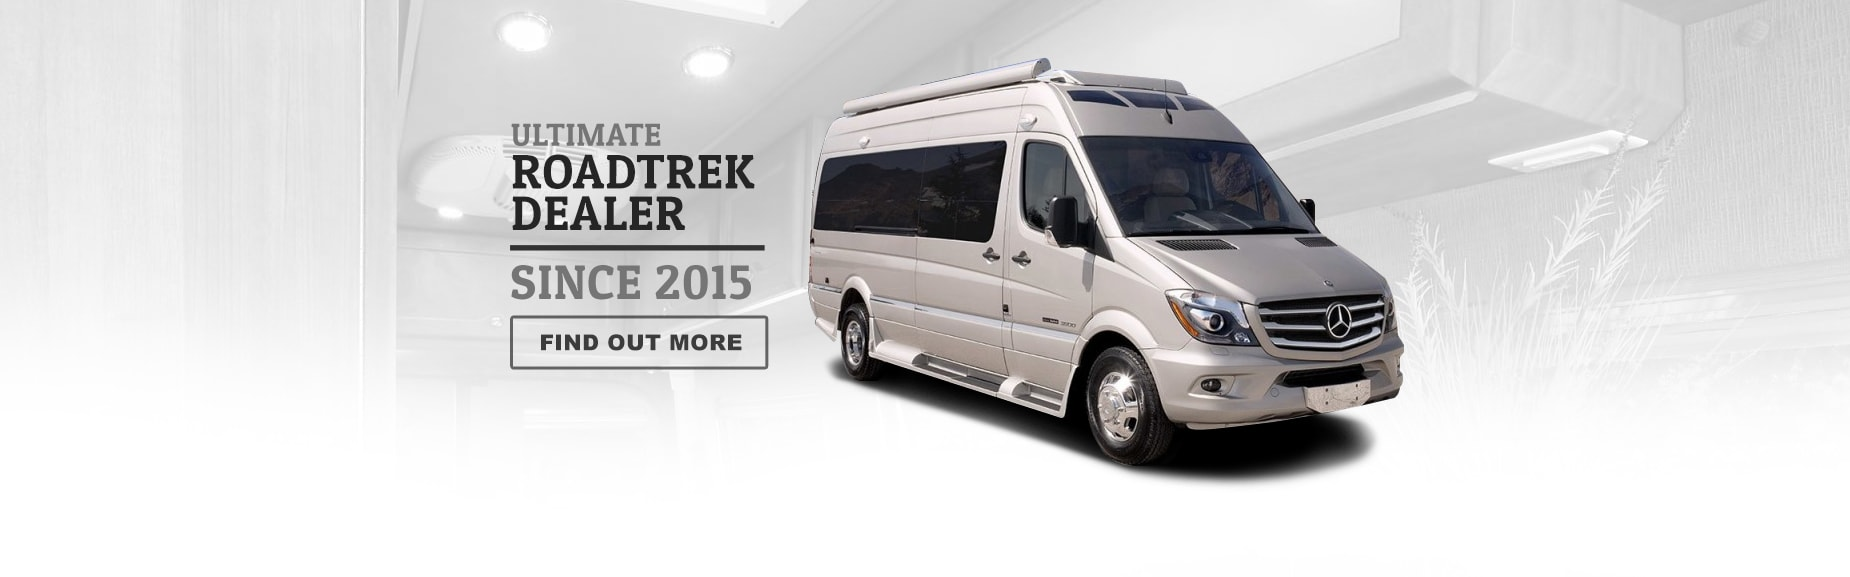 Roadtrek Dealer in Ontario   New and Used Class B Motorhome for sale ...